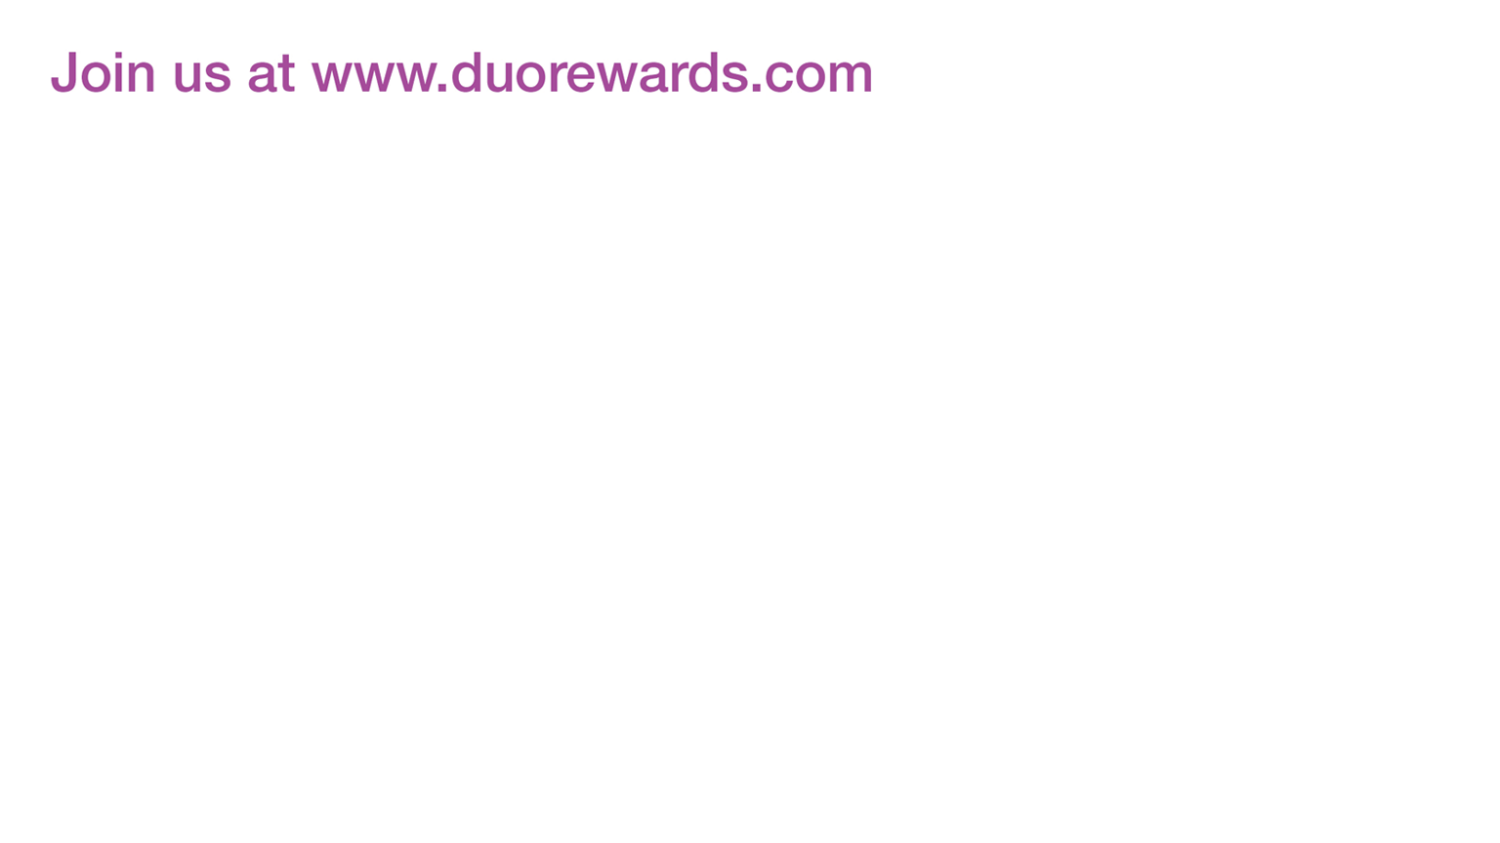 Sign up for duo rewards at www.duorewards.com